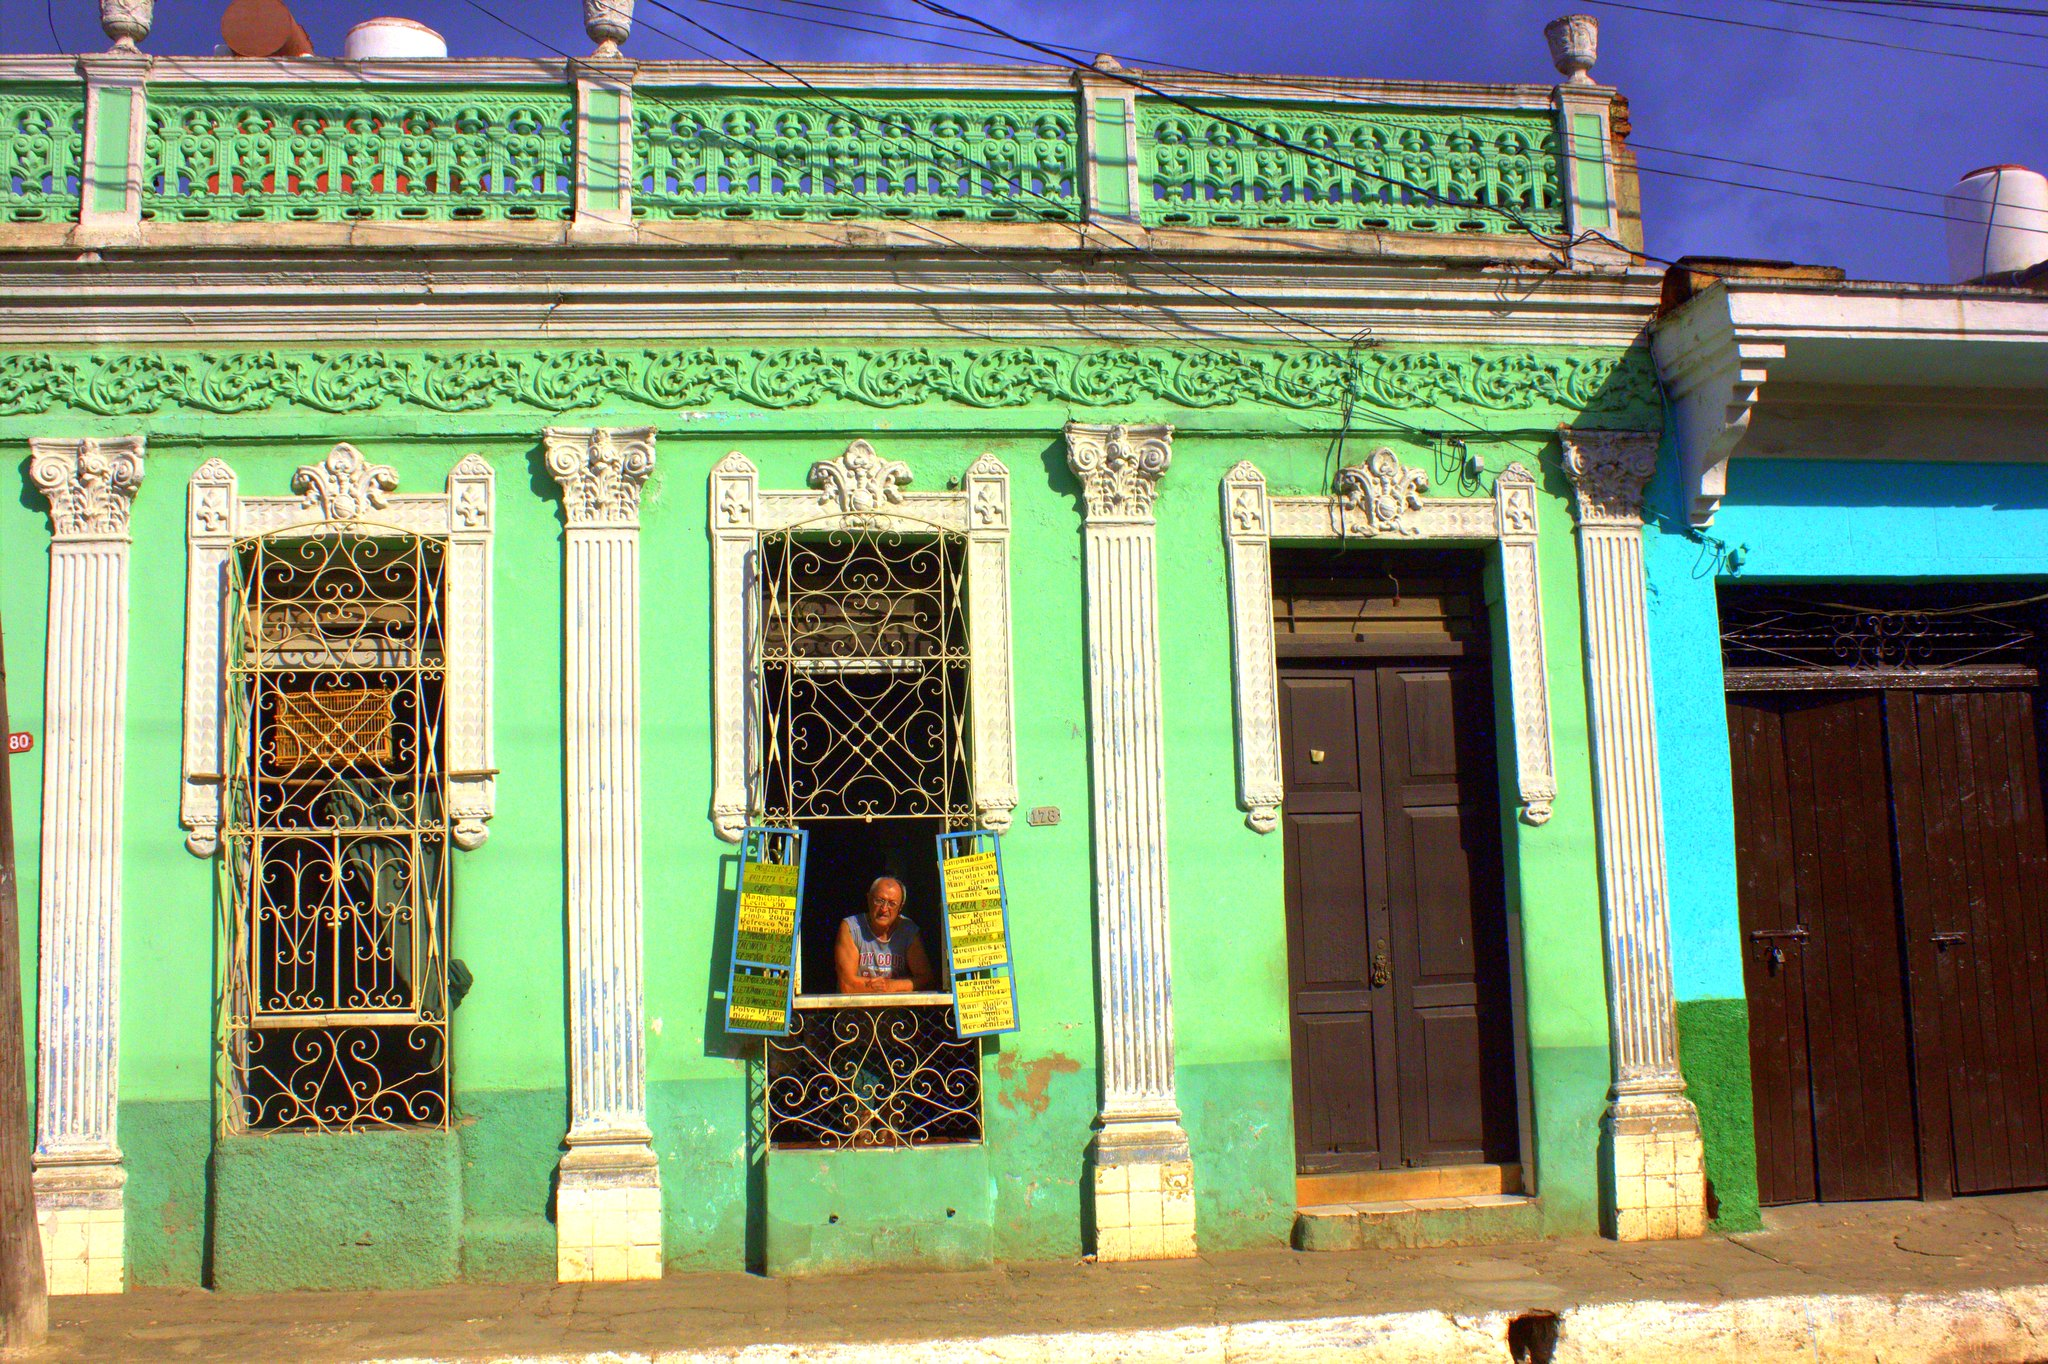 Trinidad is the second most popular city in Cuba